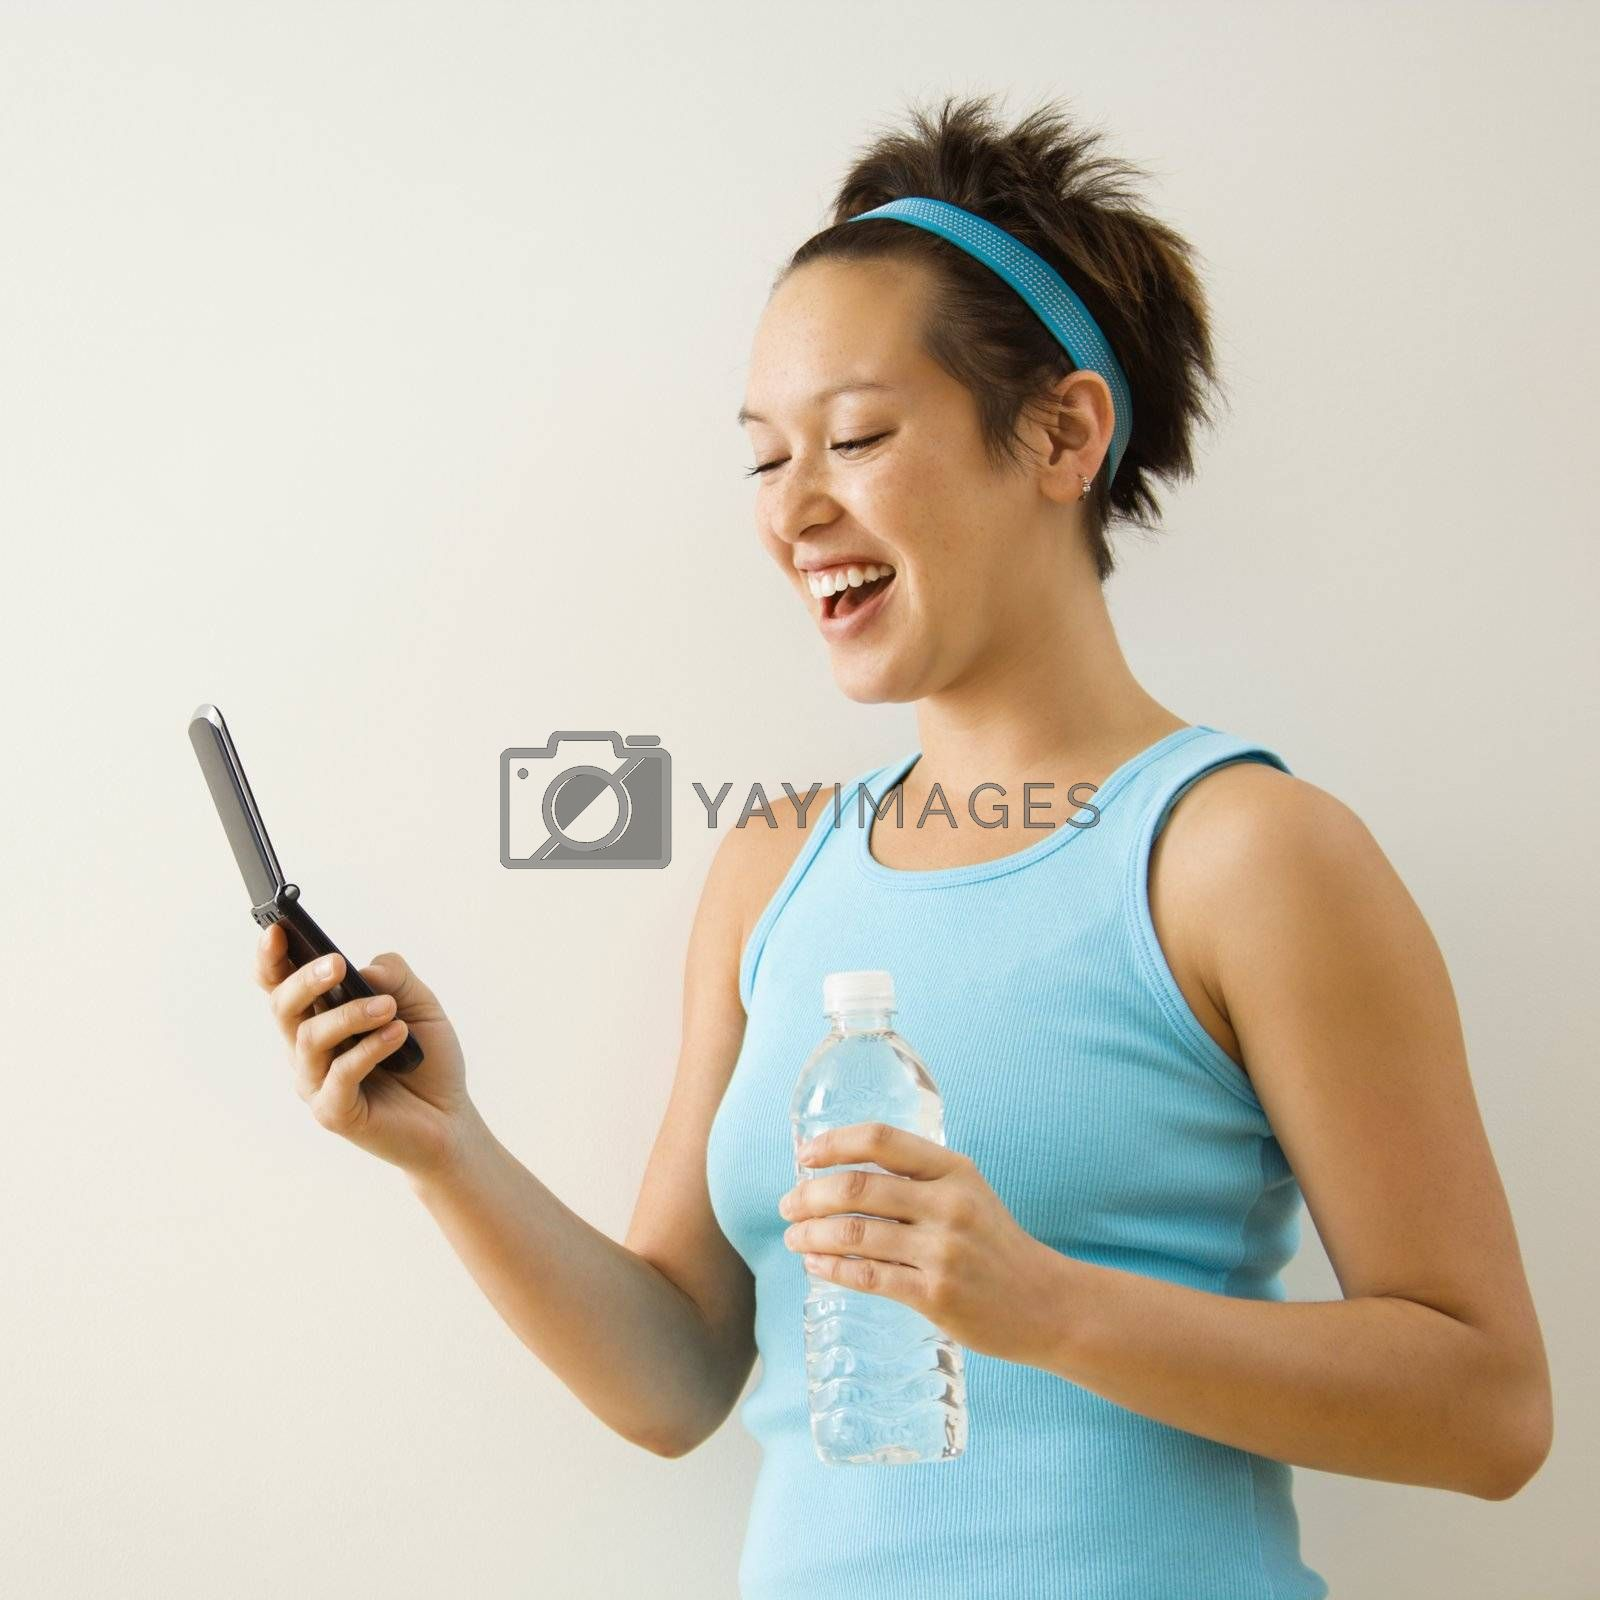 Young woman in fitness clothing holding bottled water and smiling at cellphone.